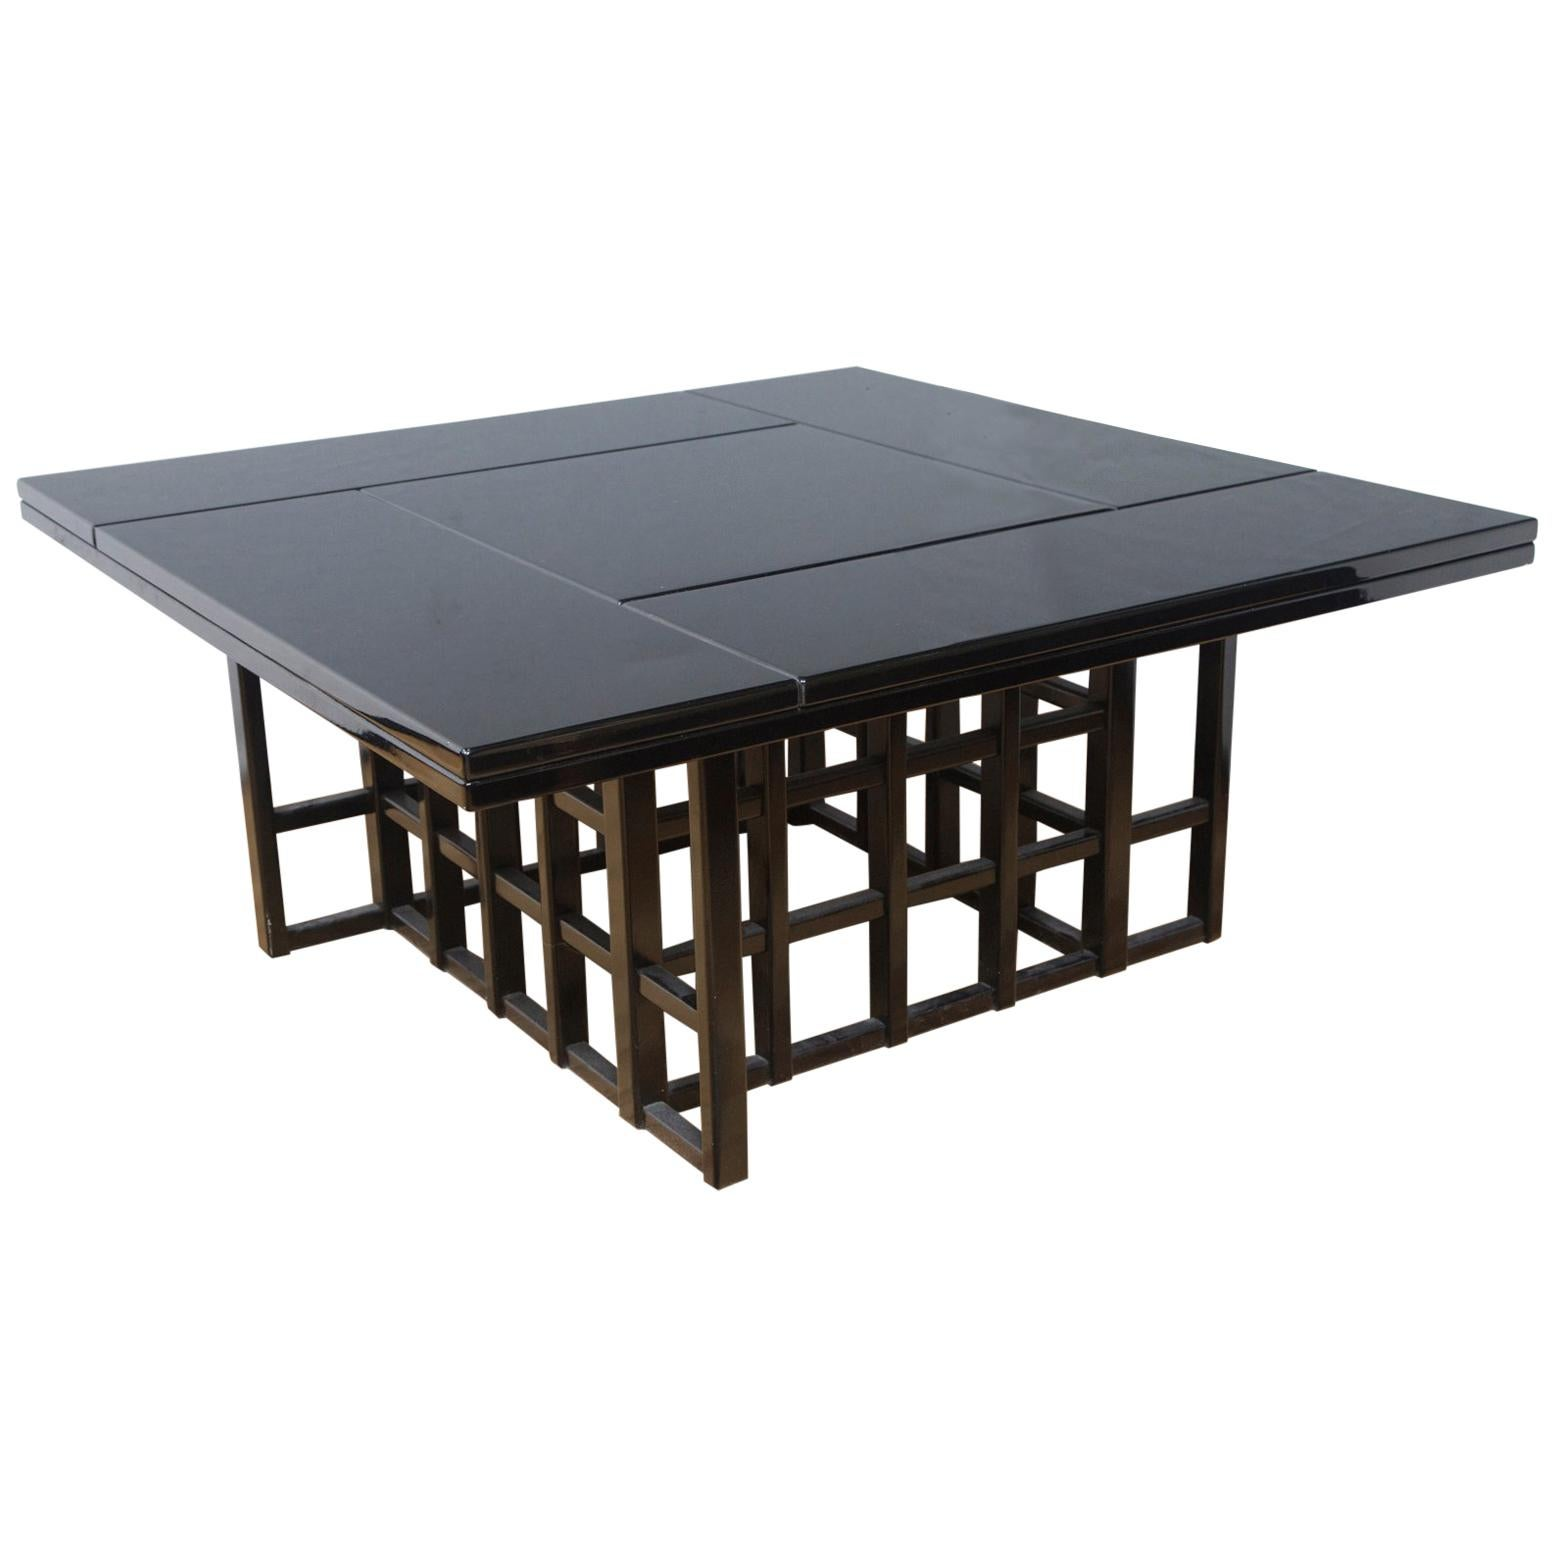 Lacquer Black coffee table pictures best photo